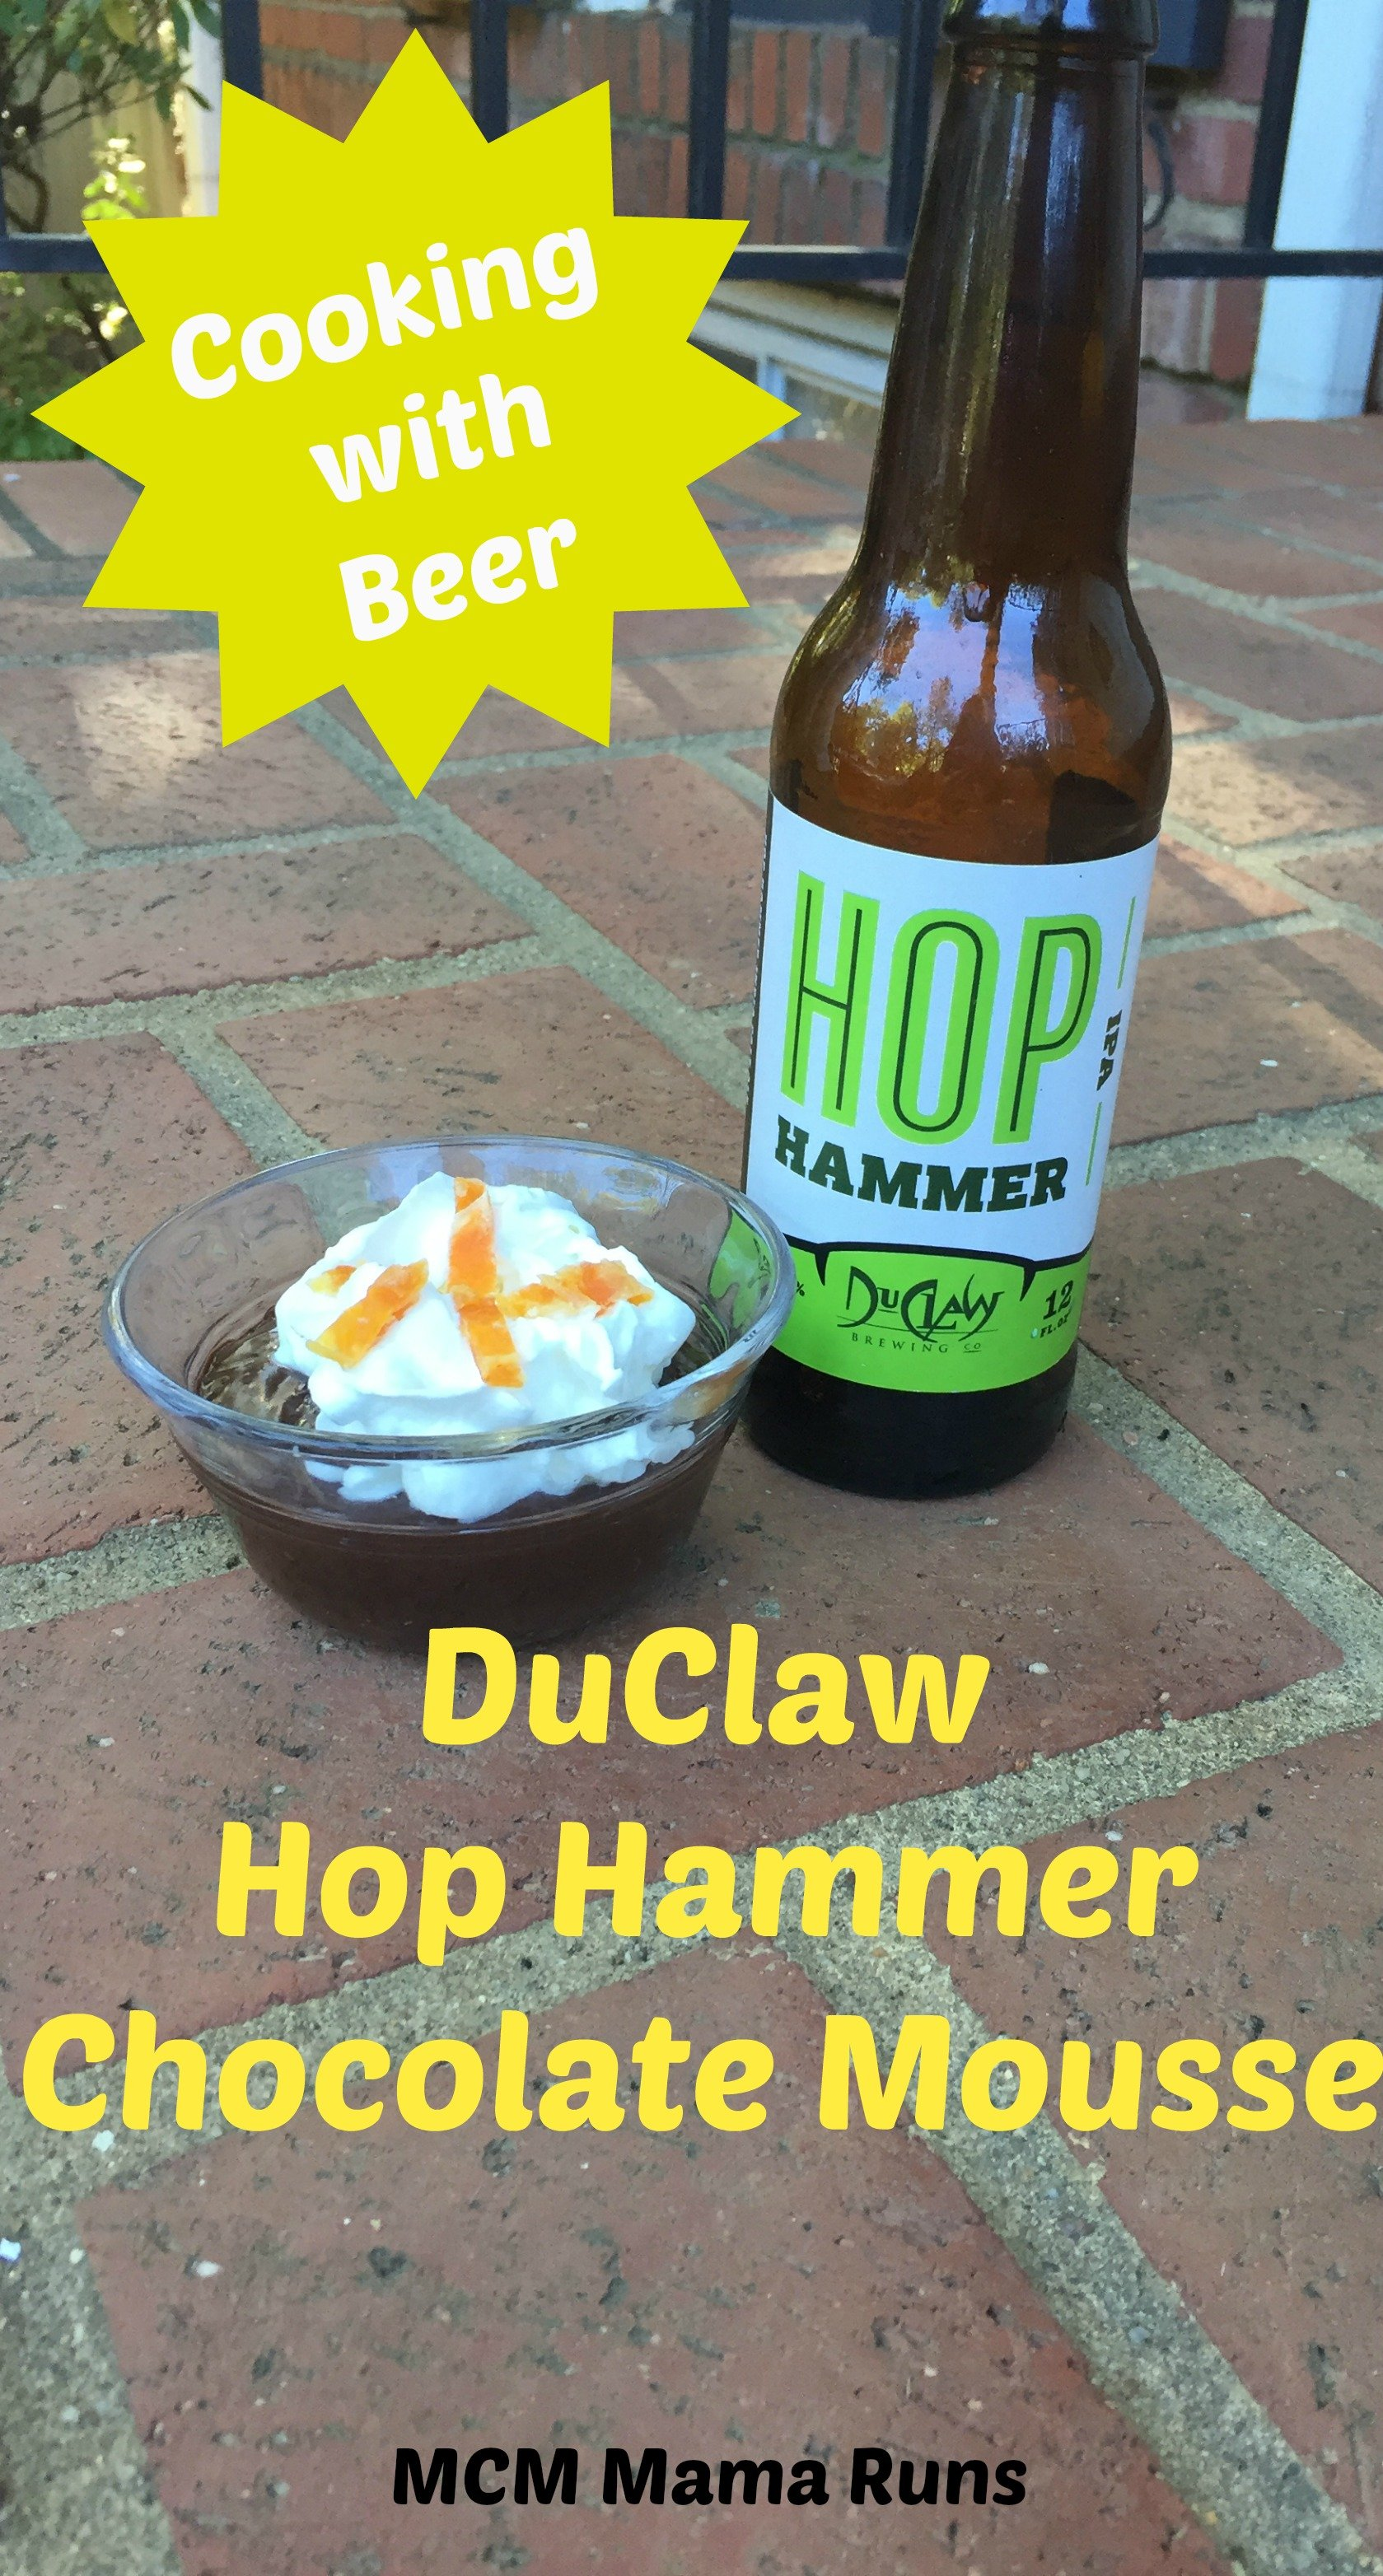 DuClaw Hop Hammer Chocolate Mousse